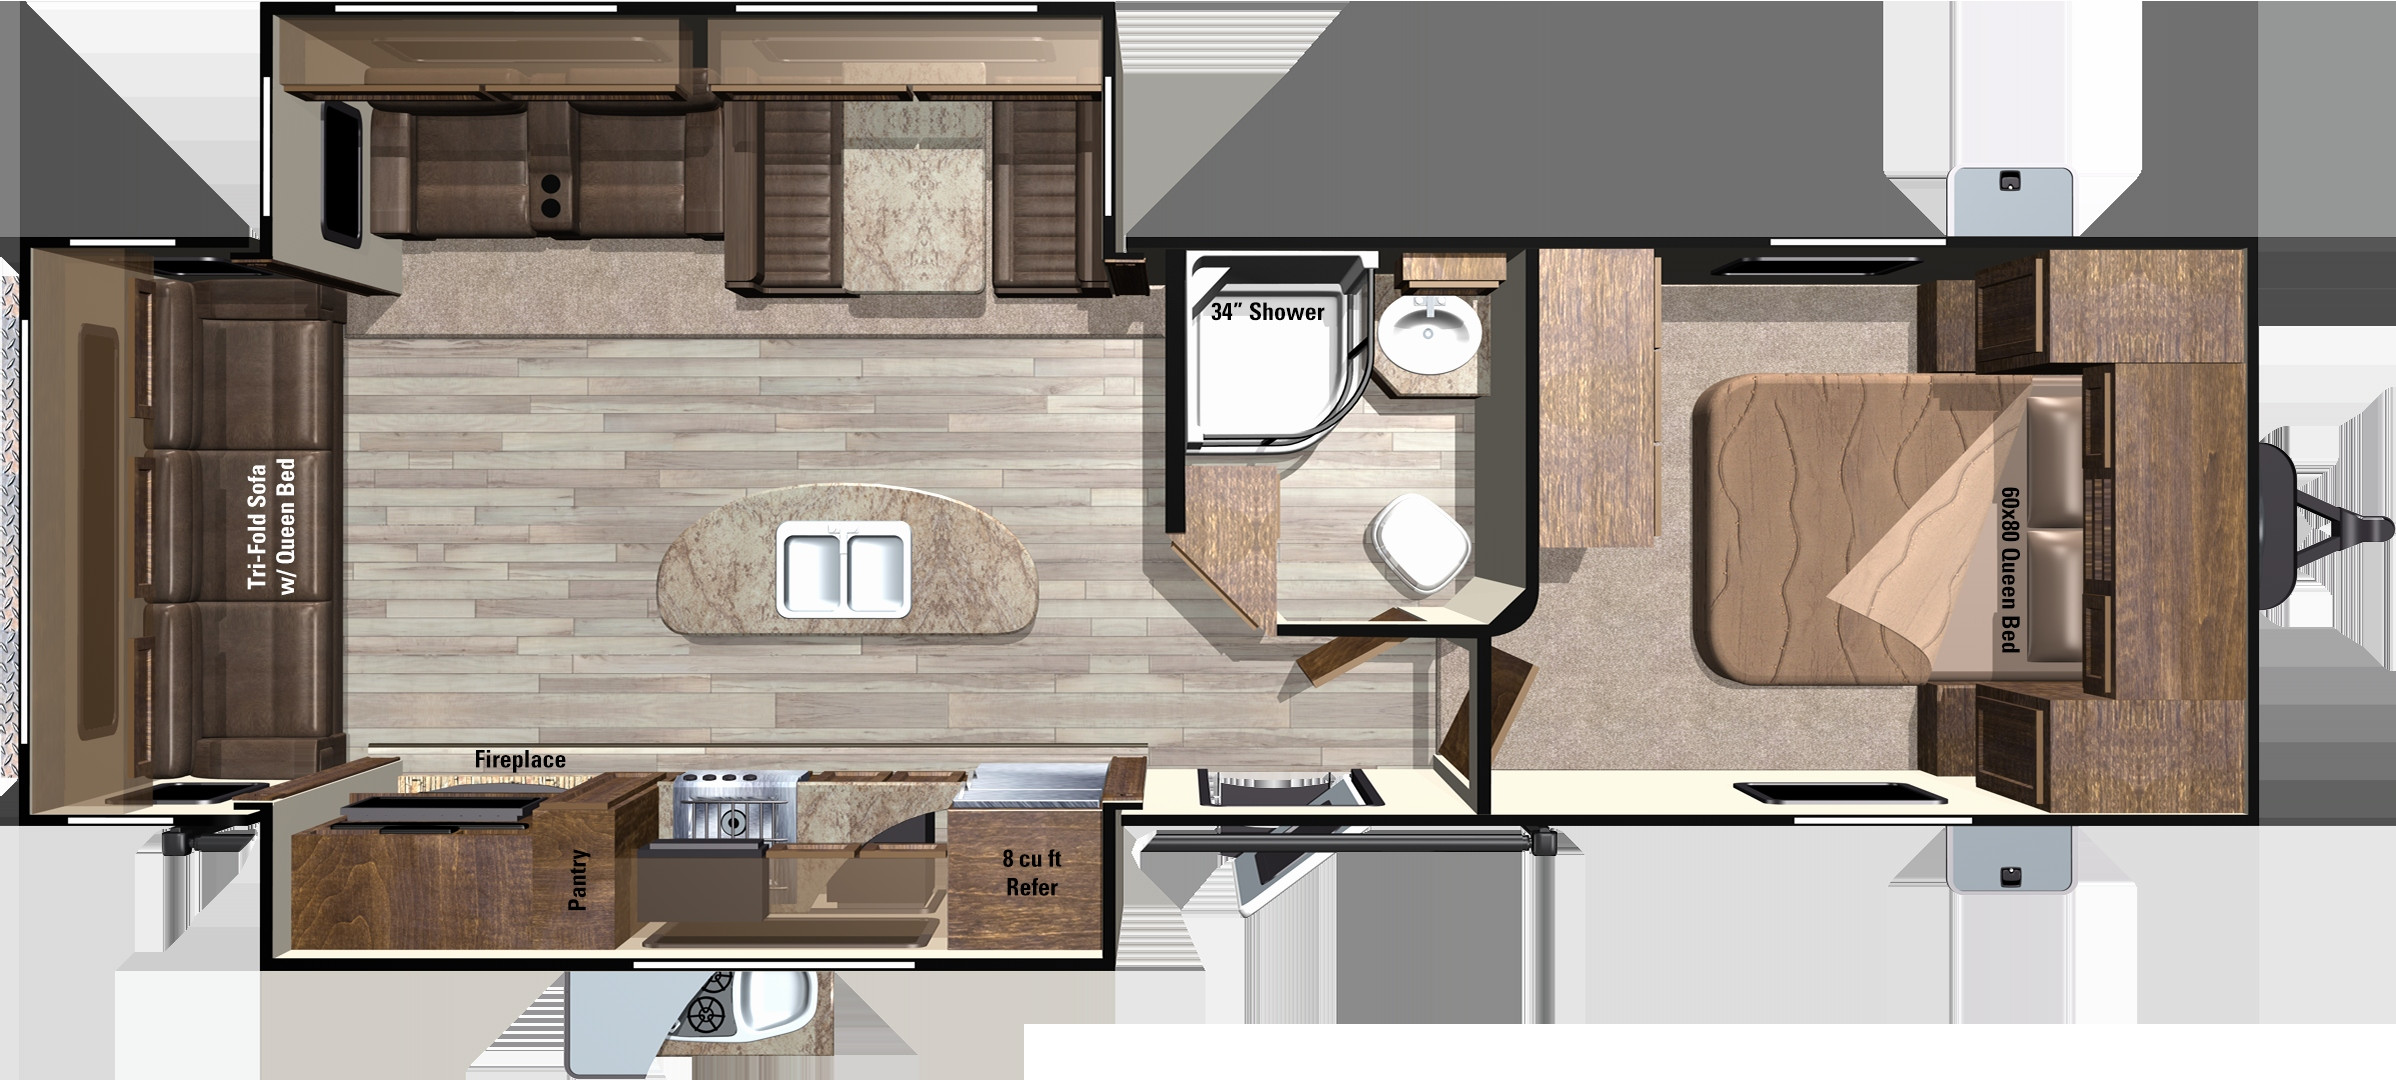 Best ideas about 3 Bedroom Rv . Save or Pin Three Bedroom Two Bath RV Now.